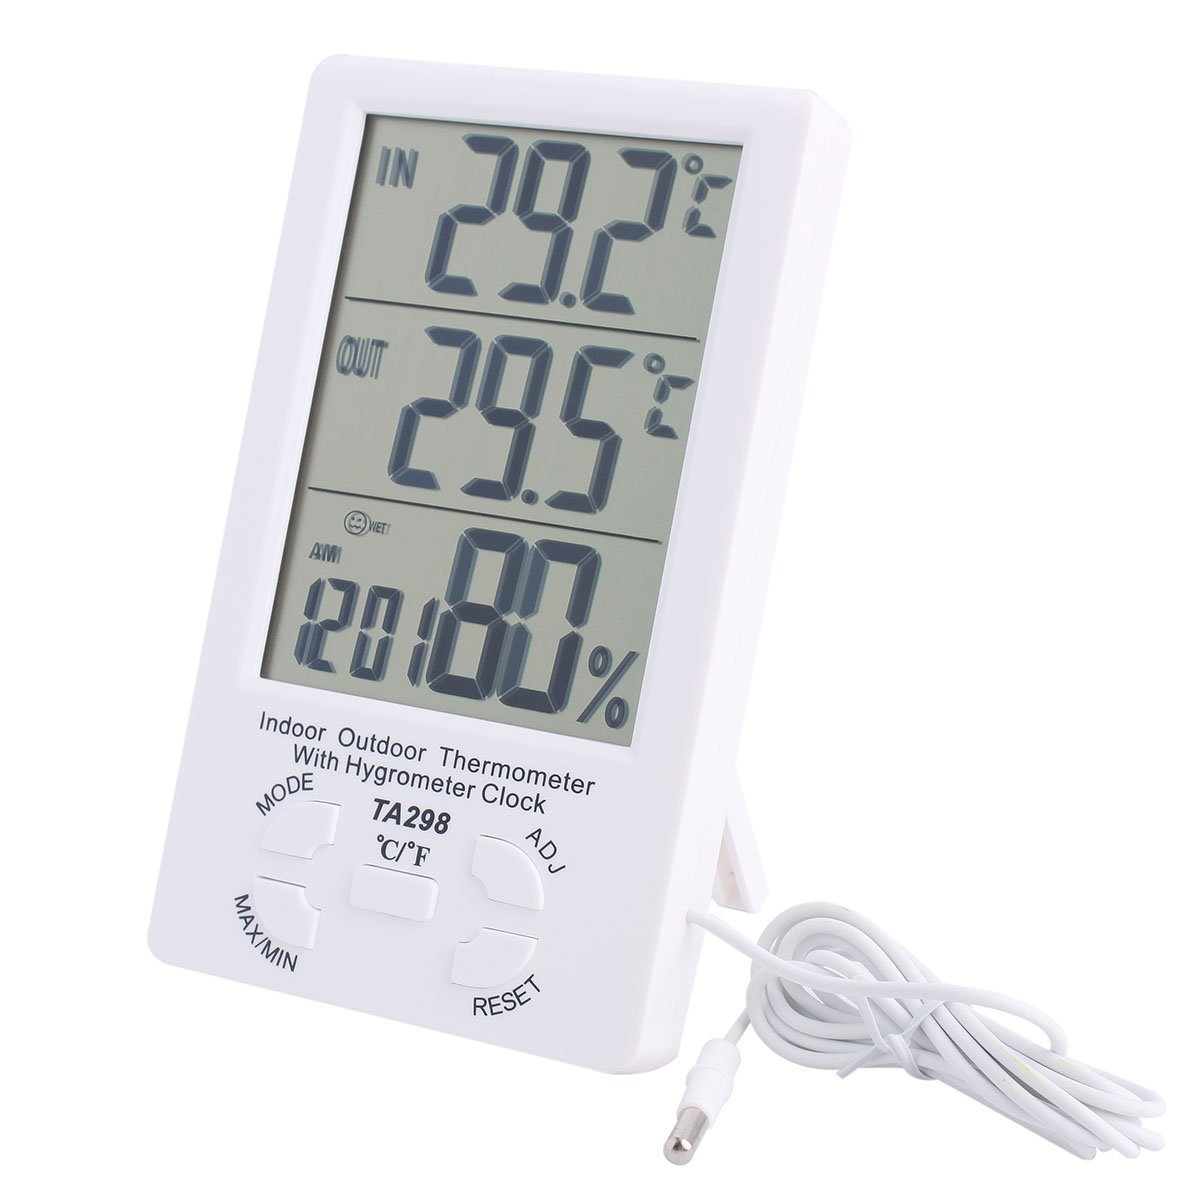 IDS Home 4.4'' LCD Thermometer Hygrometer Digital Temperature Humidity Meter with Probe for Indoor Outdoor